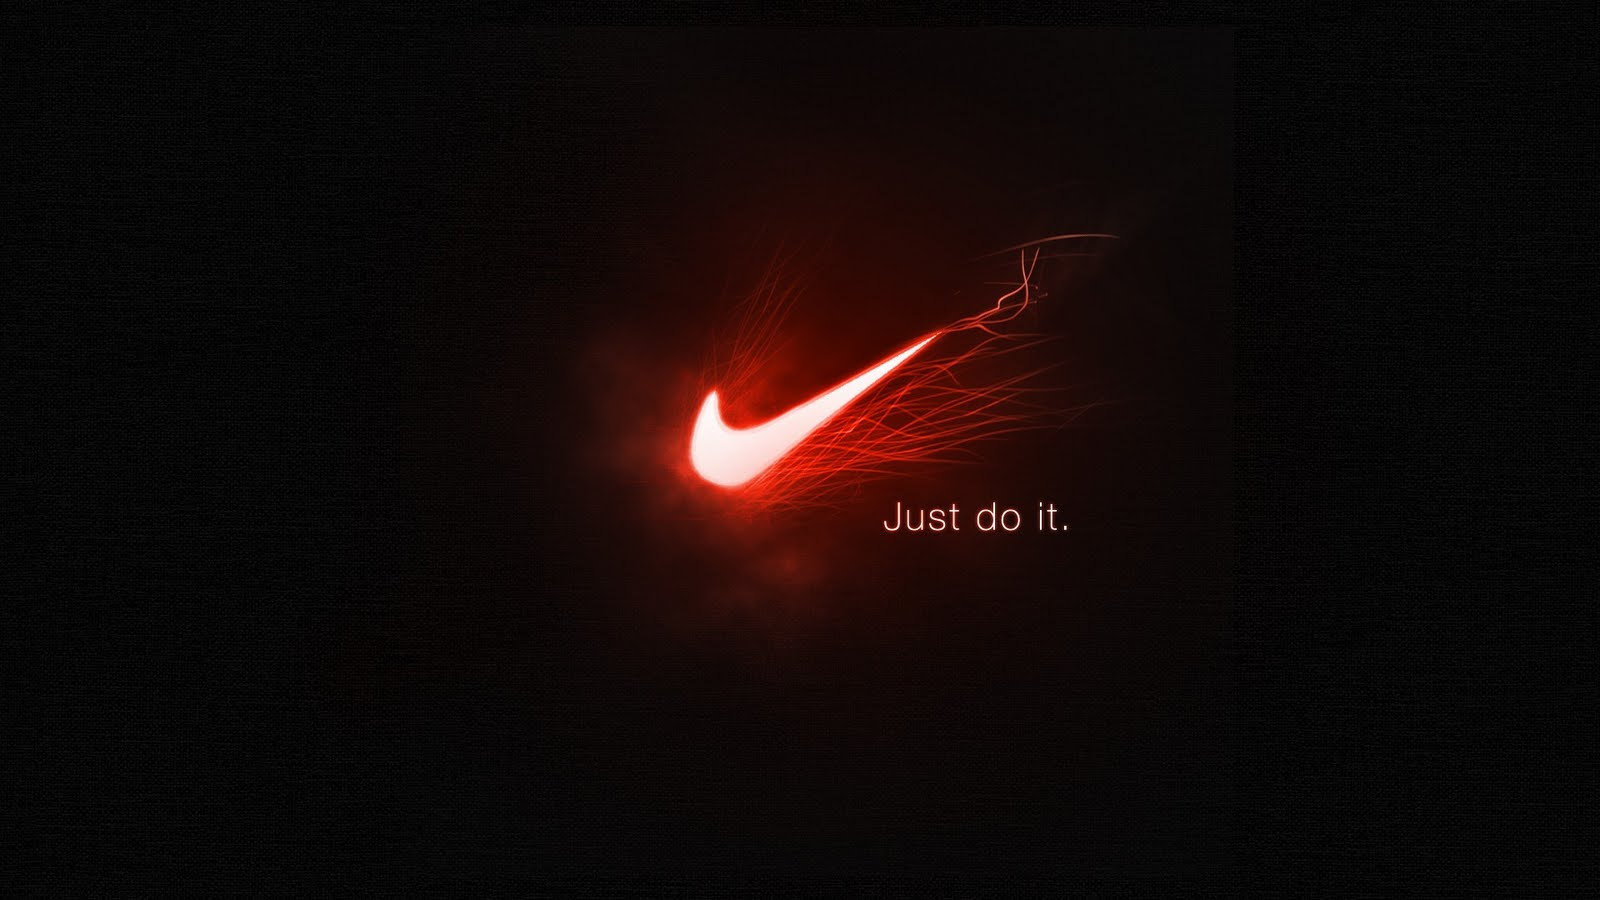 Nike wallpapers full hd pixelstalk net - Nike wallpaper hd ...